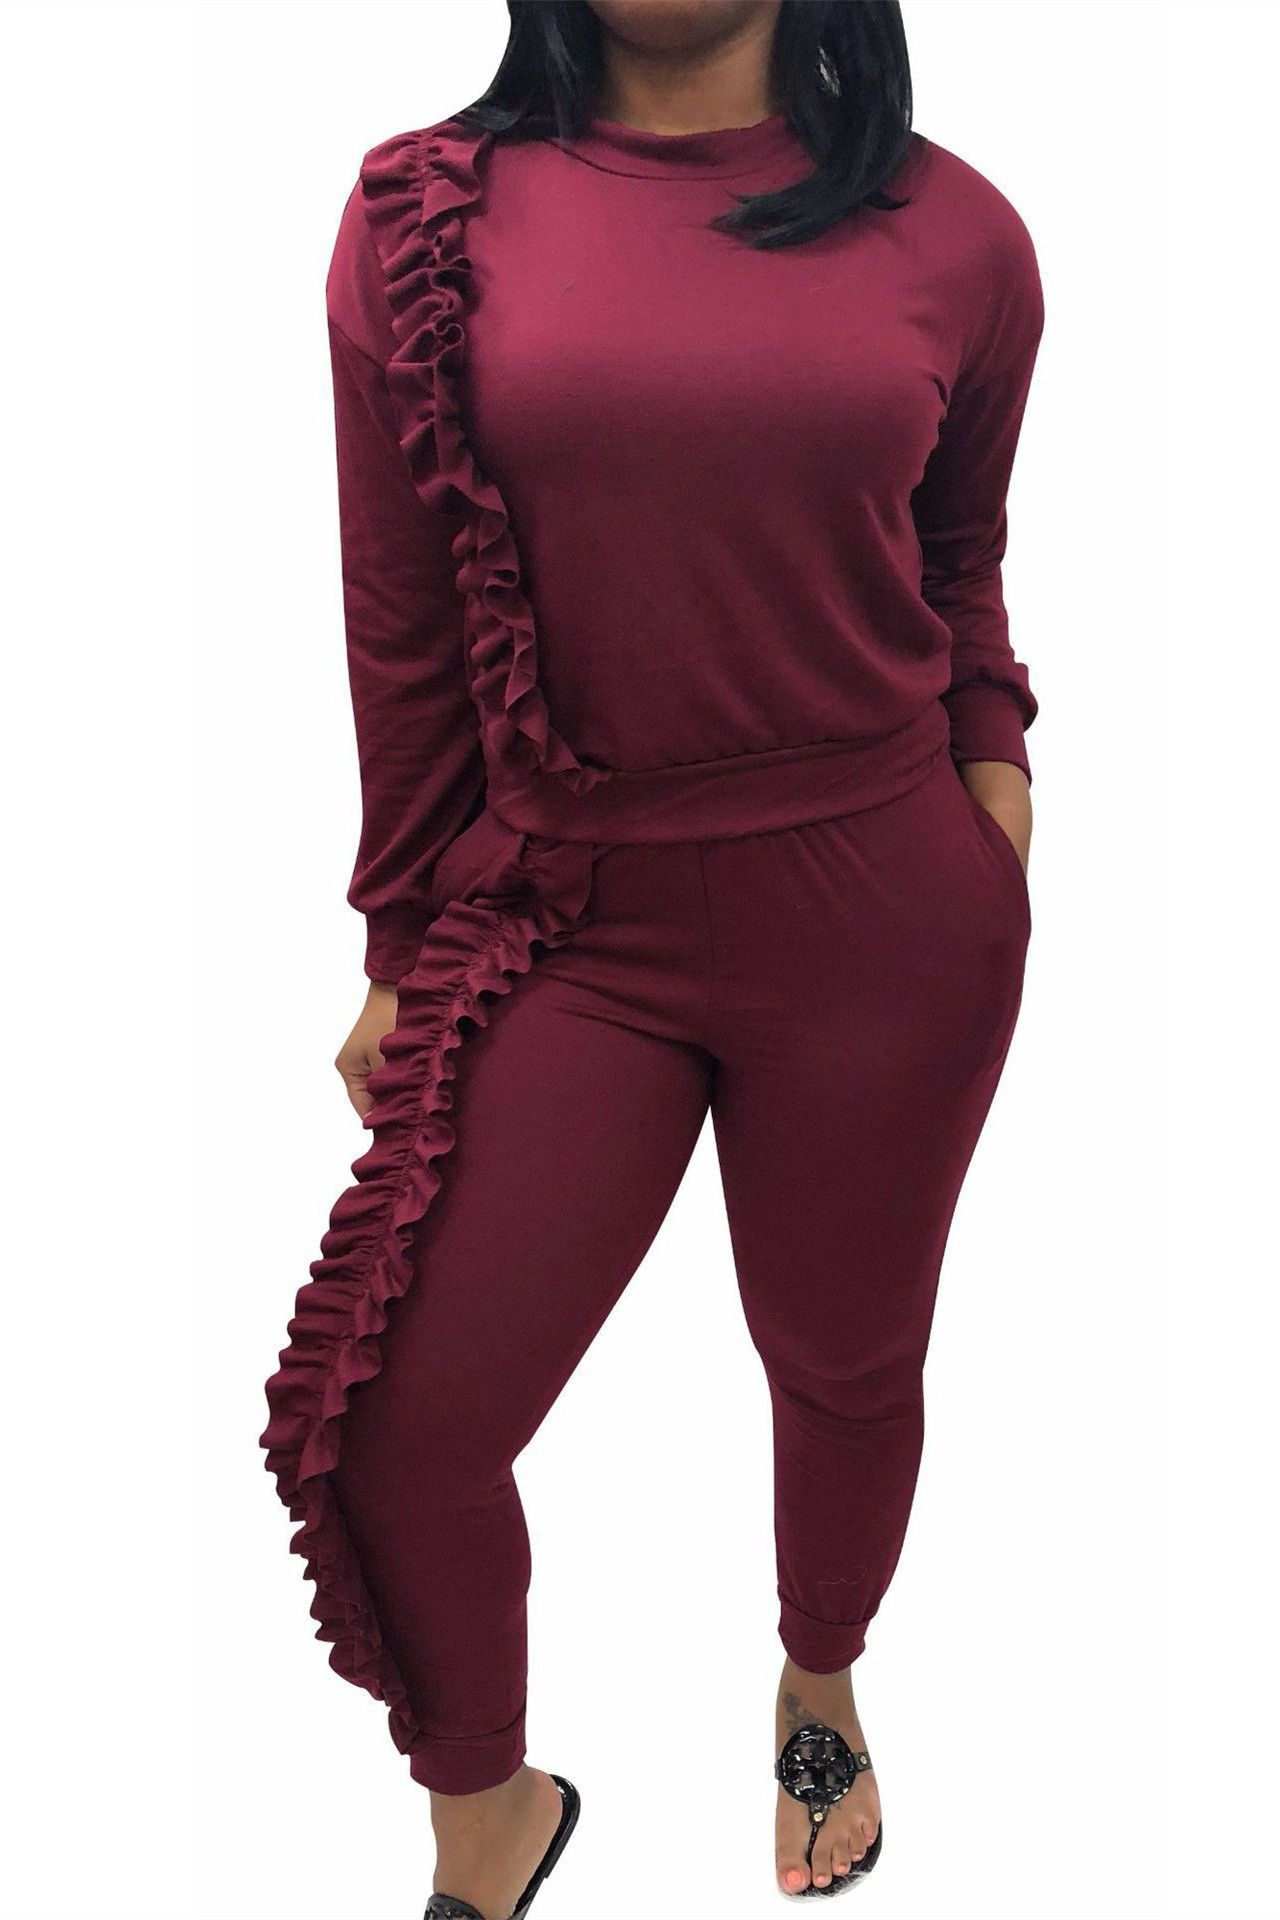 cde25d5bb5632d Casual Long Sleeve Ruffle Stretch Spring Winter Two Piece Women Jumpsuit